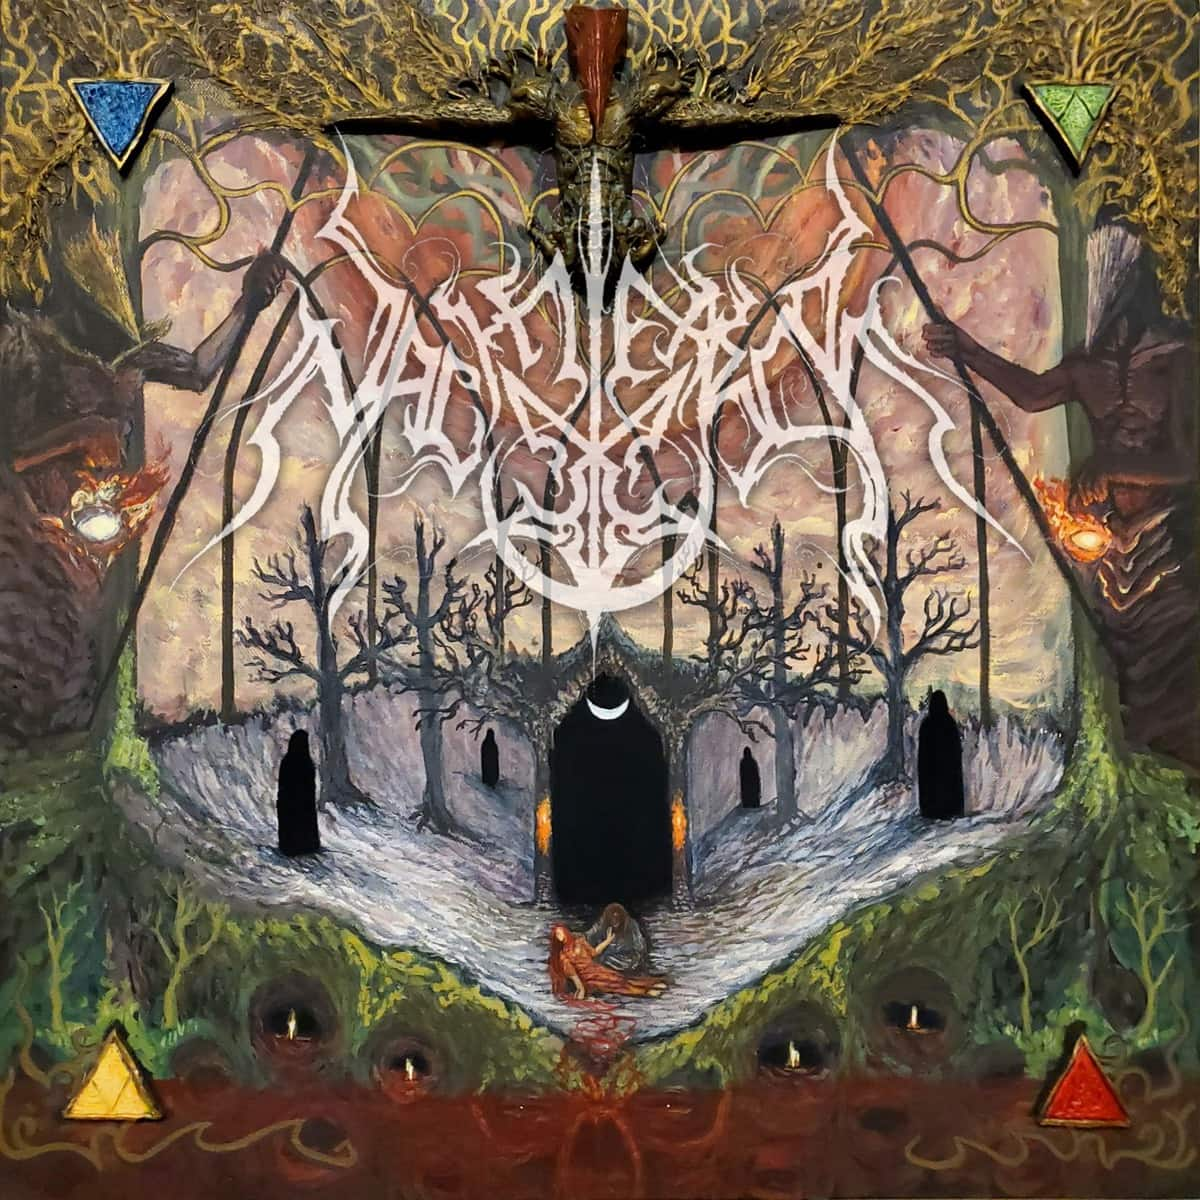 NACHTTERROR (CAN) – Judgement, 2019